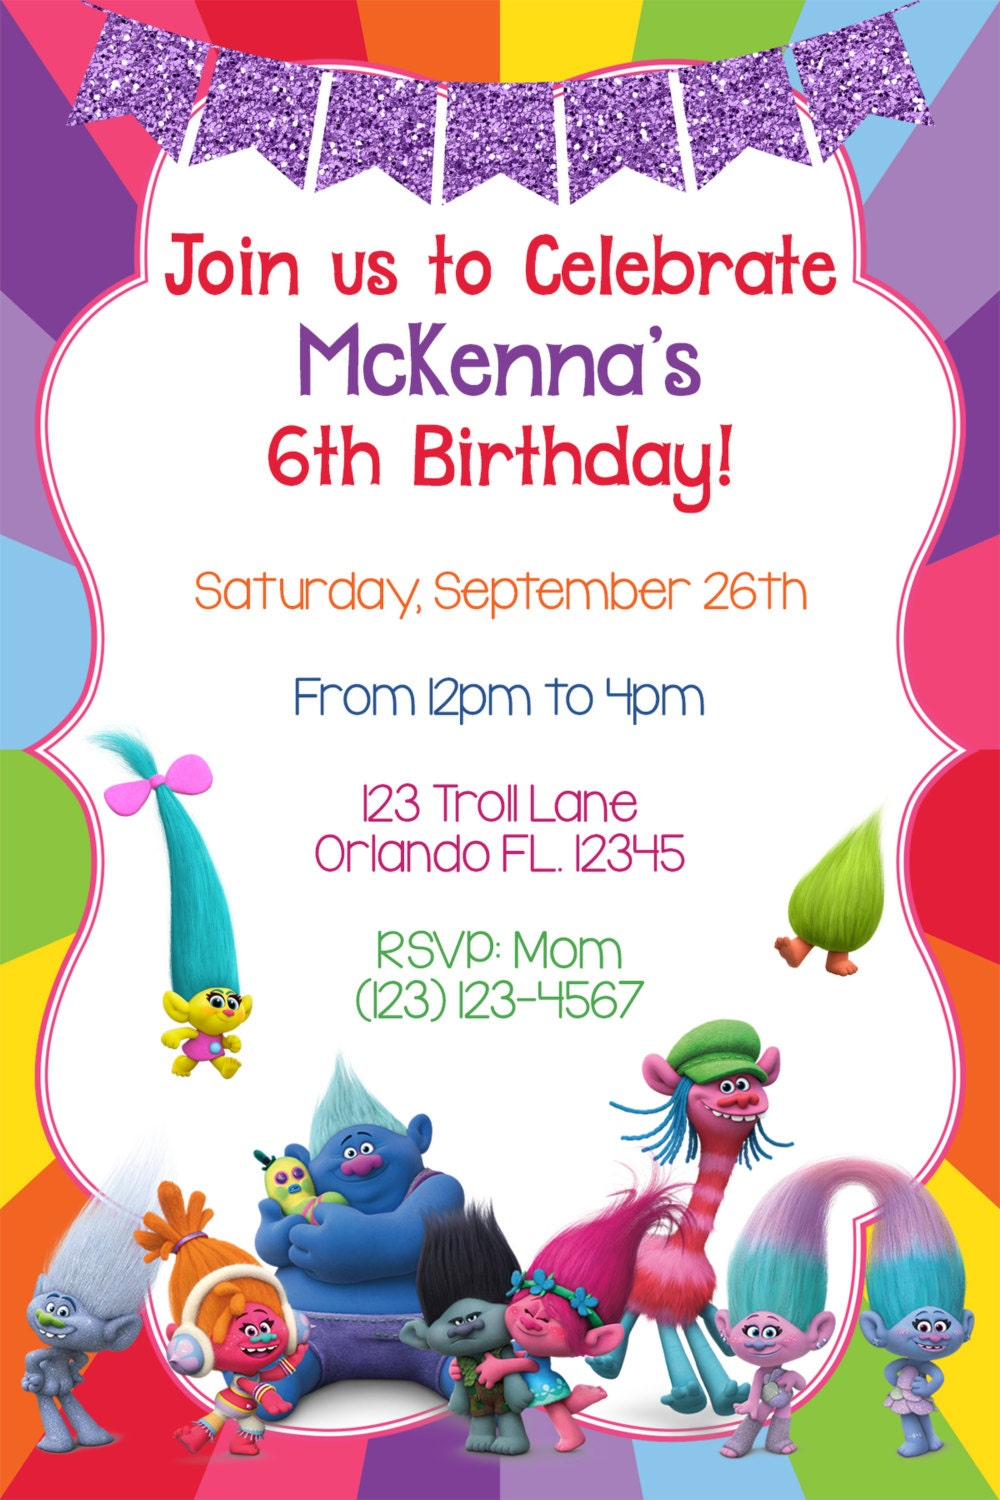 Juicy image with regard to trolls birthday invitations printable